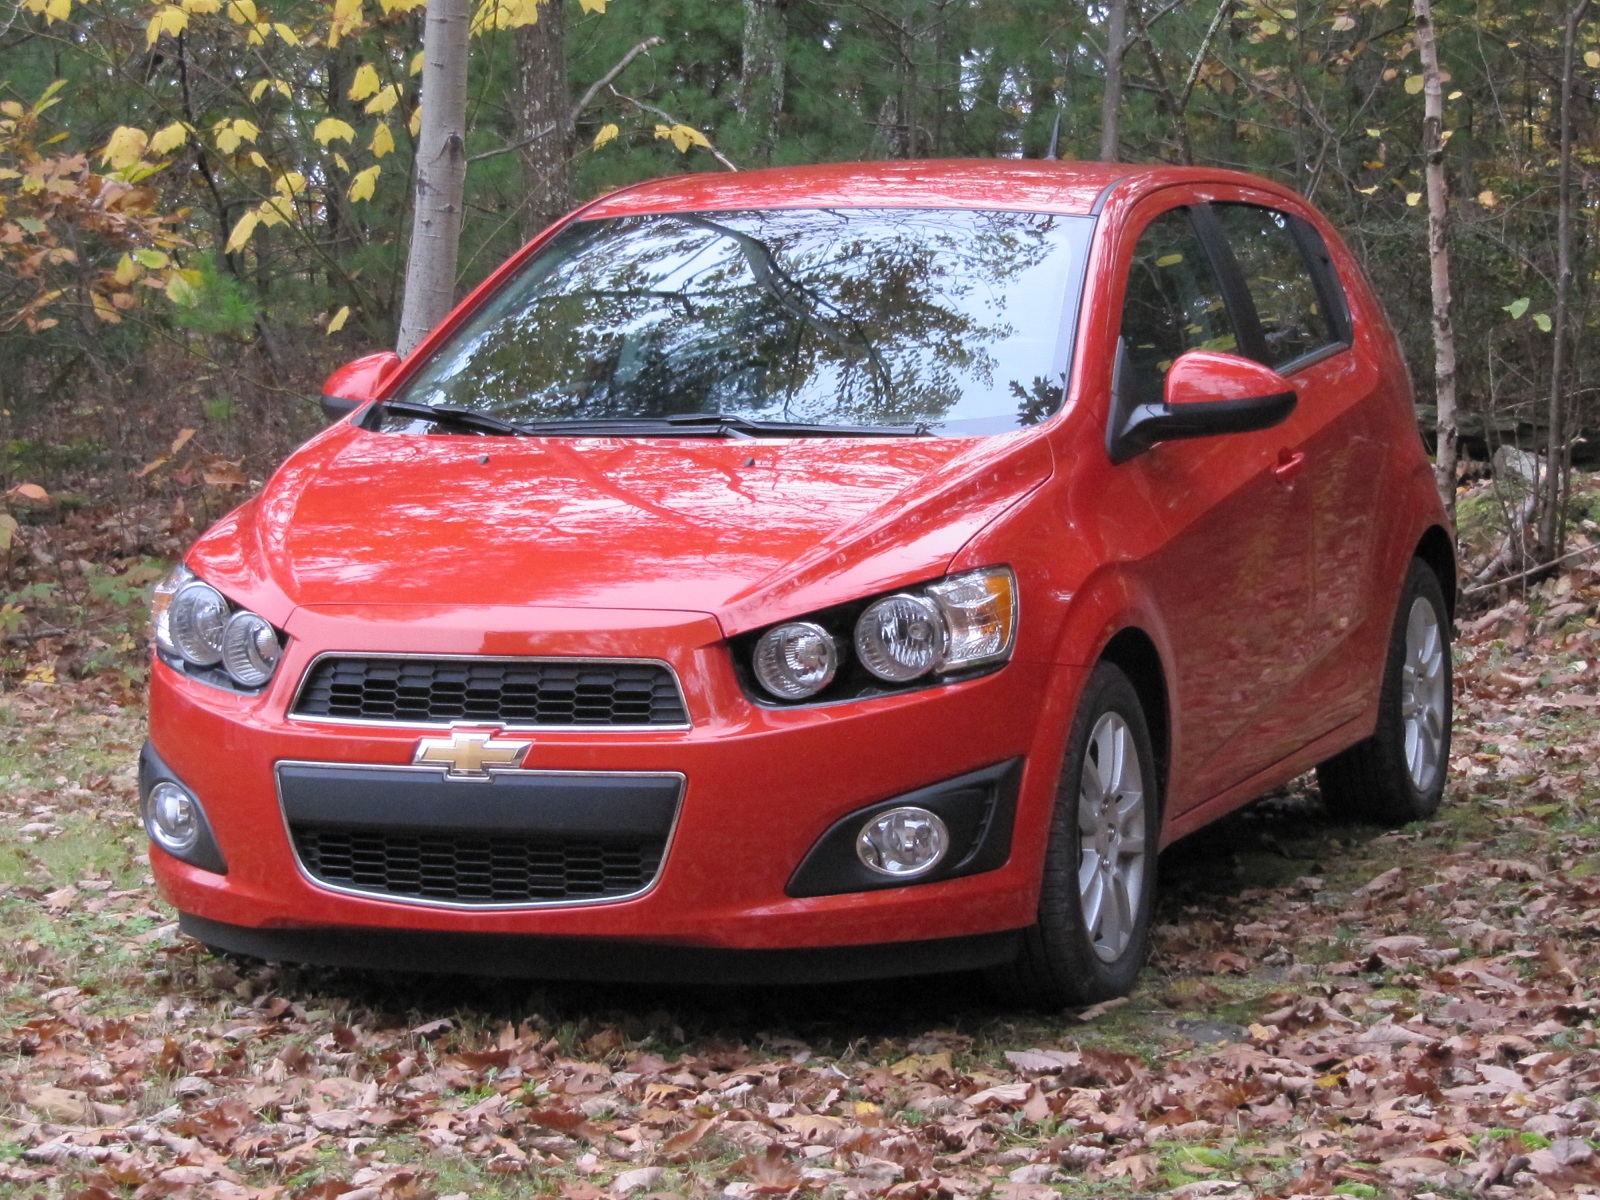 2012-chevrolet-sonic_100368557_h Great Description About 2011 Chevy Aveo Recalls with Captivating Images Cars Review